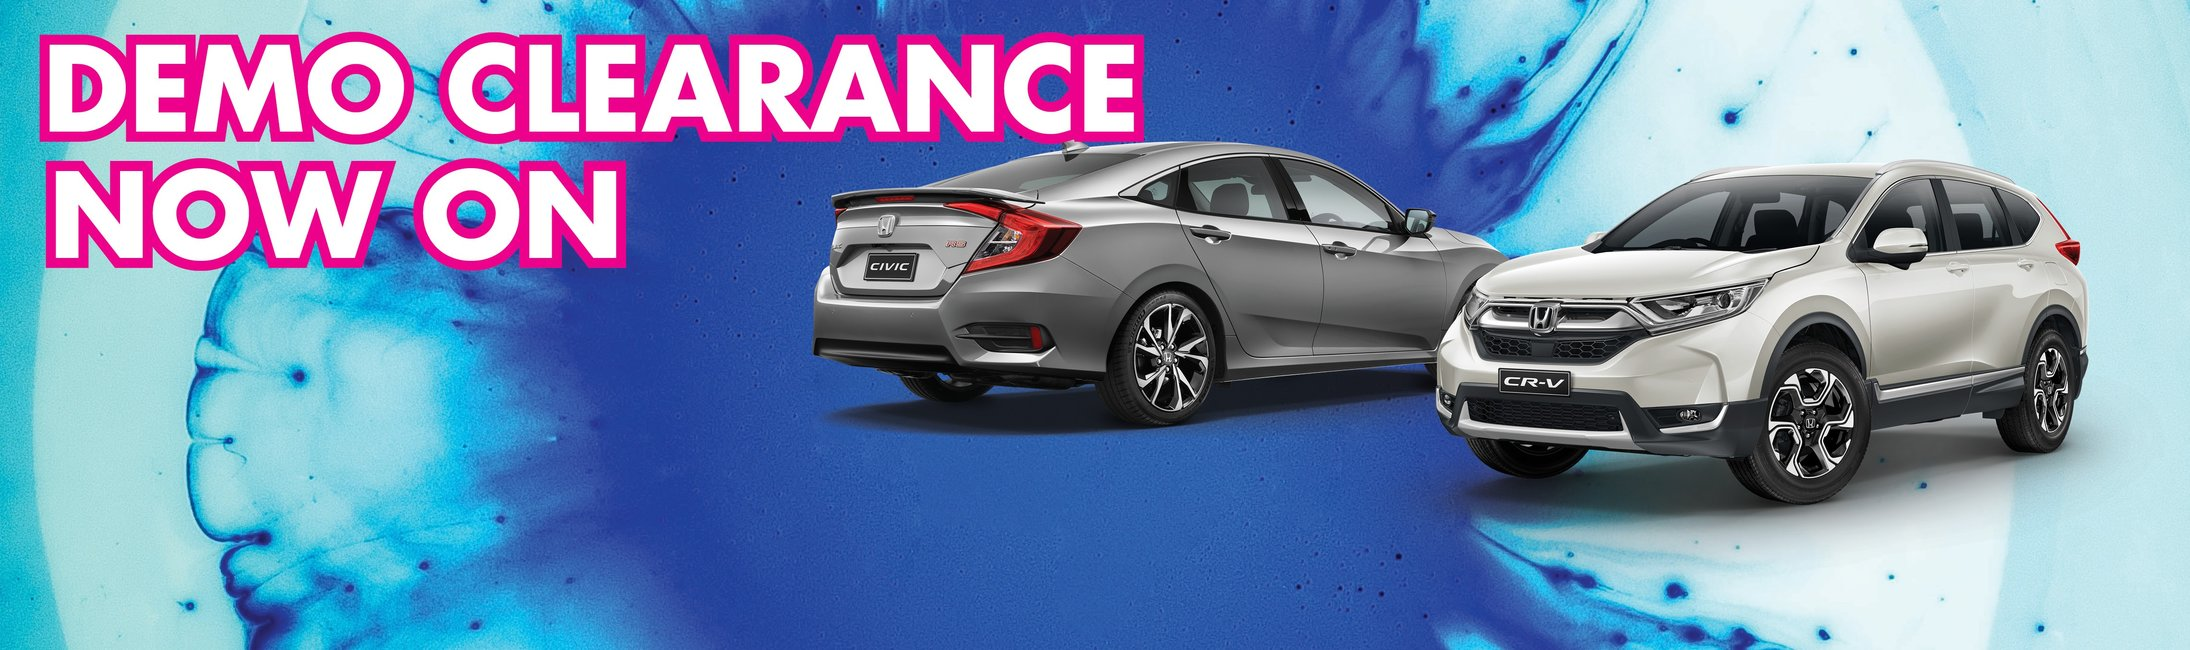 Burswood Honda Demo Clearance